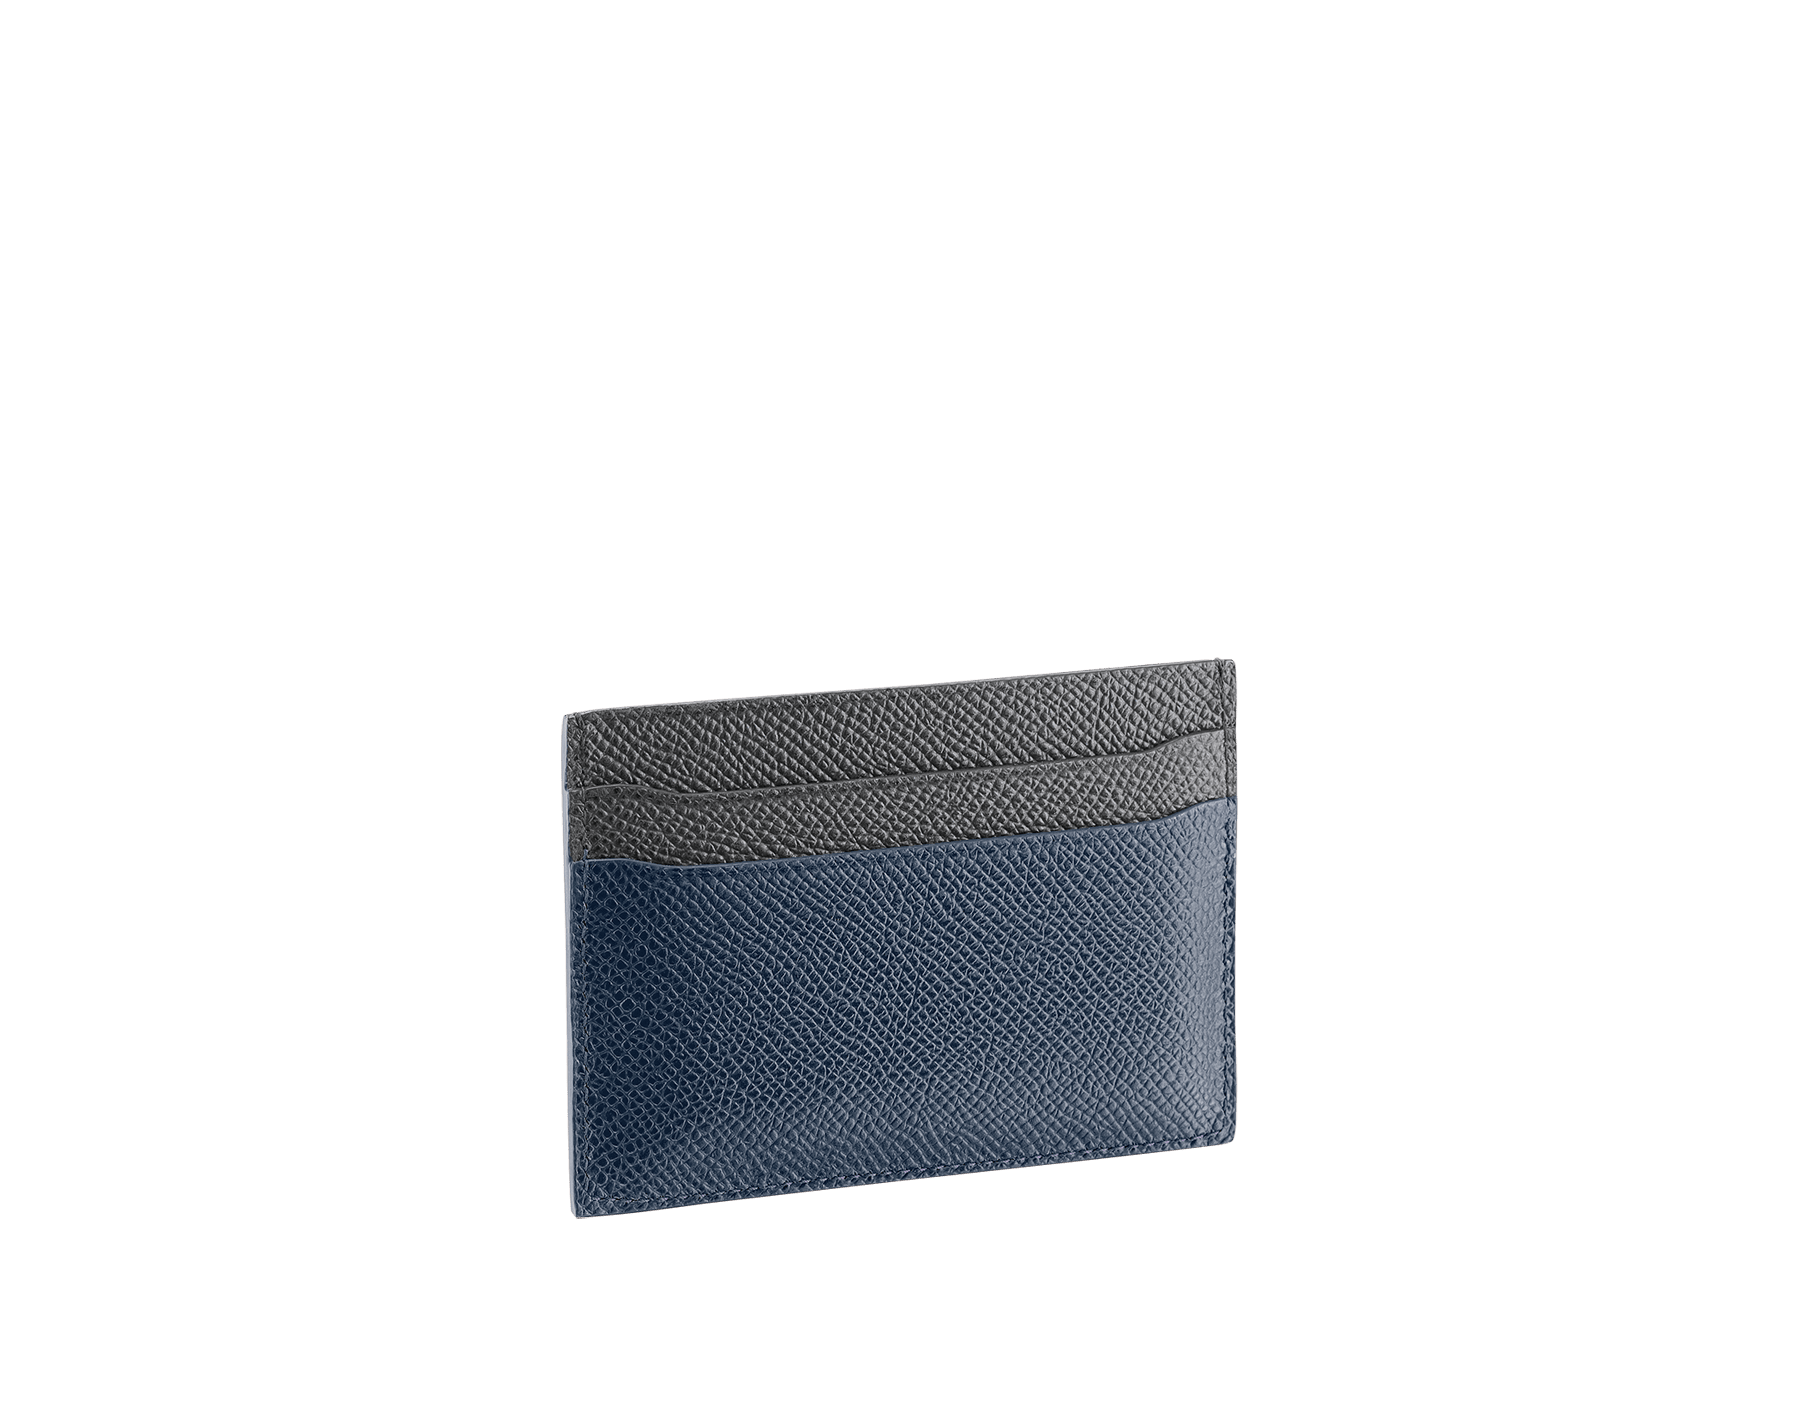 BVLGARI BVLGARI credit card holder in denim sapphire and charcoal diamond grain calf leather and blue slate nappa lining. Iconic logo decoration in palladium-plated brass. 289118 image 2